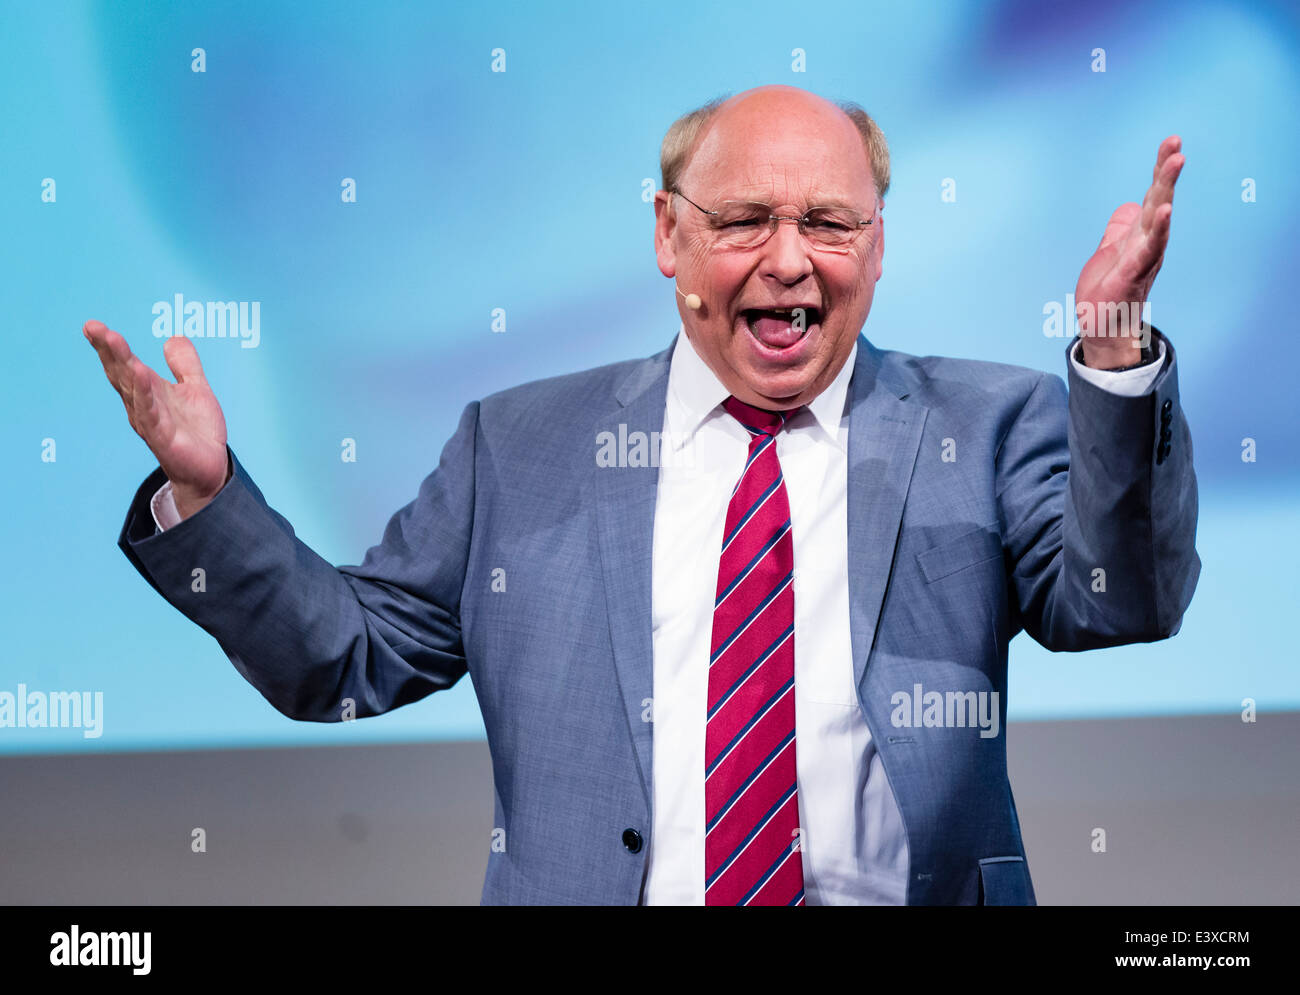 German actor, director, and comedian Hans-Joachim Heist performs his choleric character Gernot Hassknecht. - Stock Image